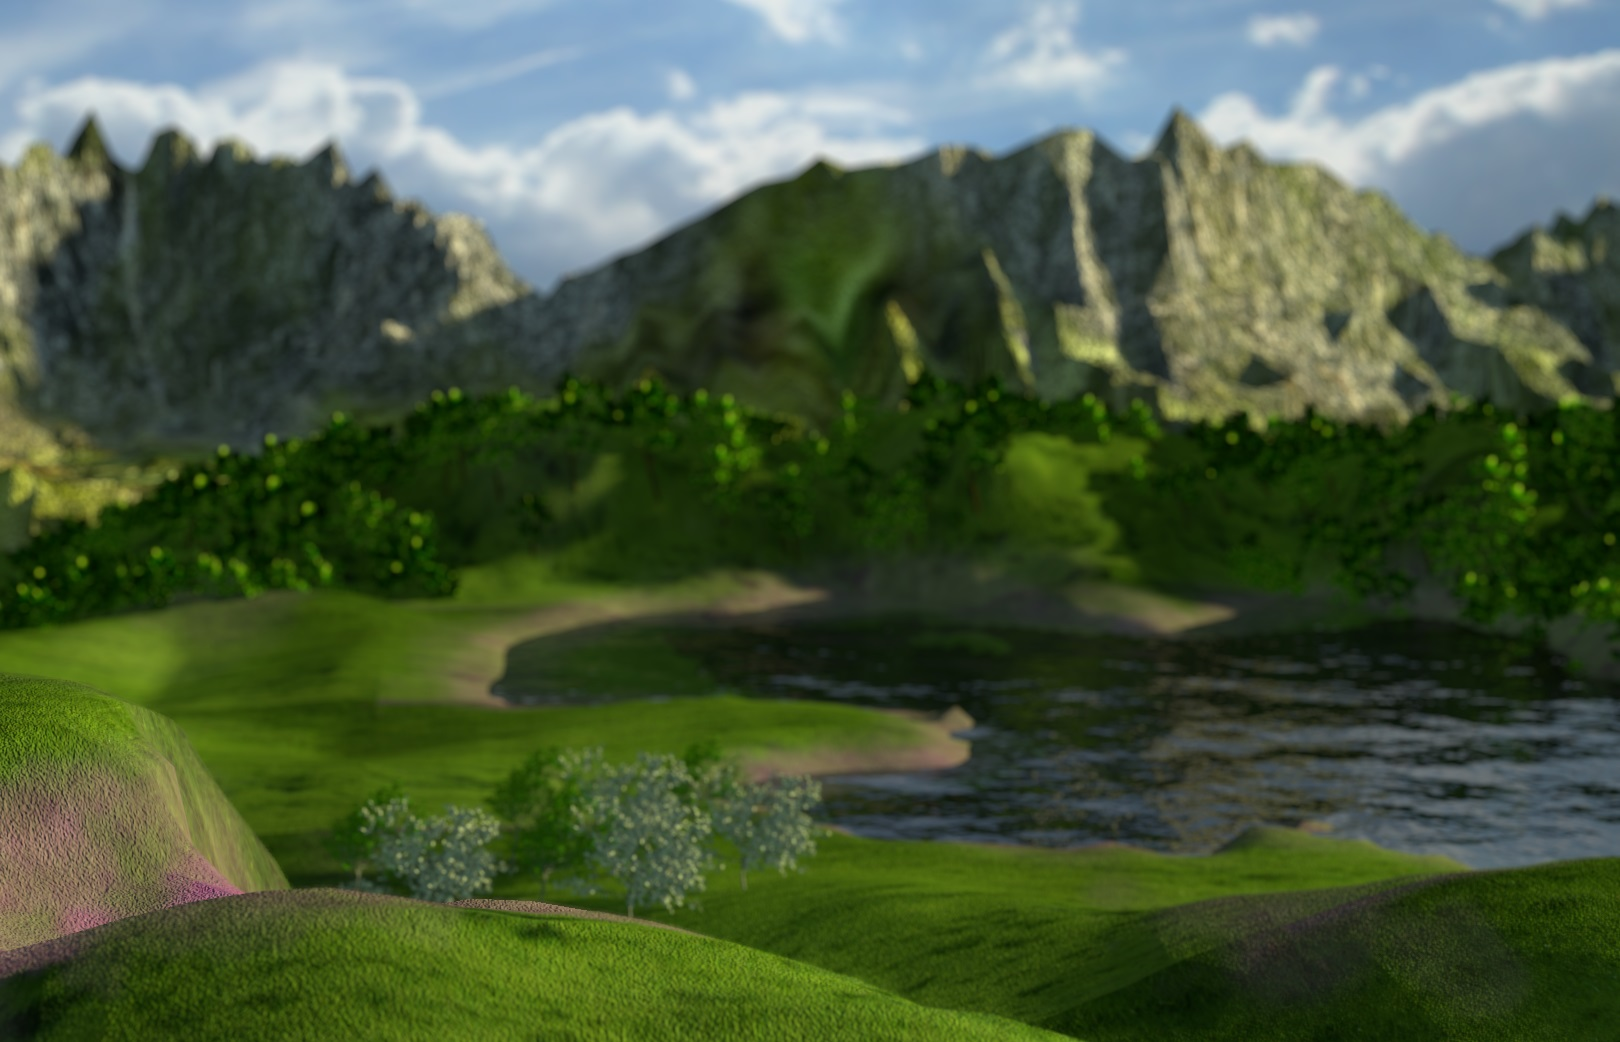 How To Create Mountains In Blender (In 5 minutes or less)